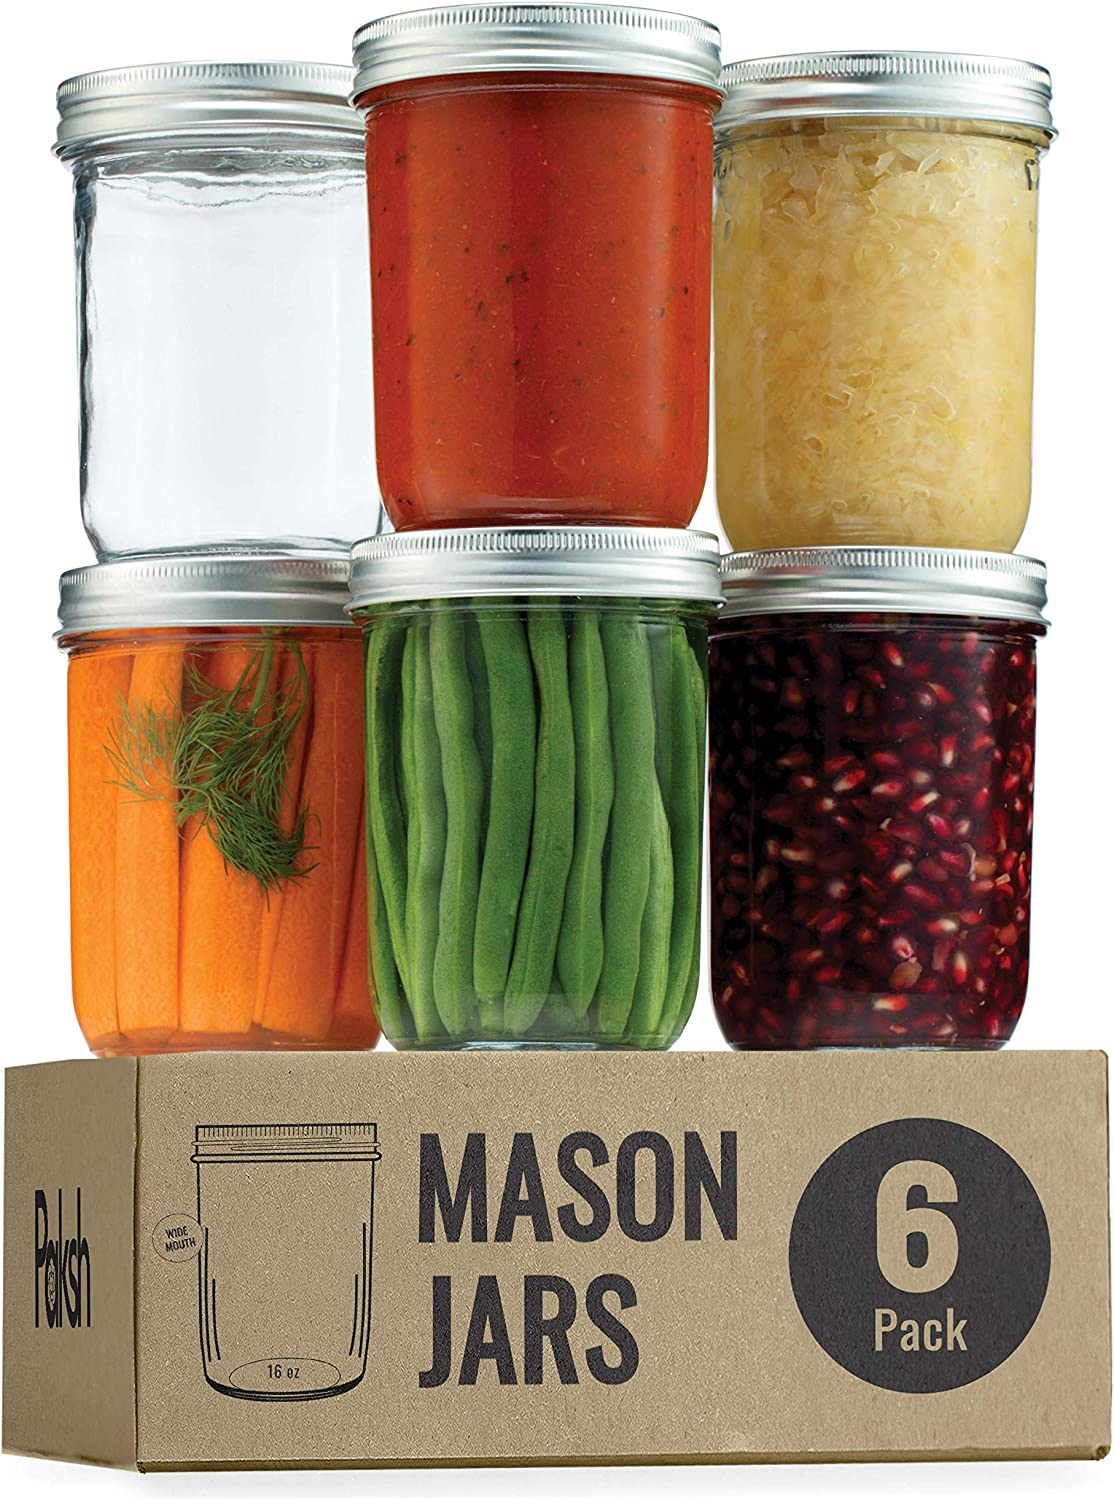 Wide Mouth Glass Mason Jars, 16 Ounce Glass Canning Jars with Silver Metal Airtight Lids and Bands with Chalkboard Labels, for Canning, Preserving, Meal Prep, Overnight Oats, Jam, Jelly, (6 Pack)